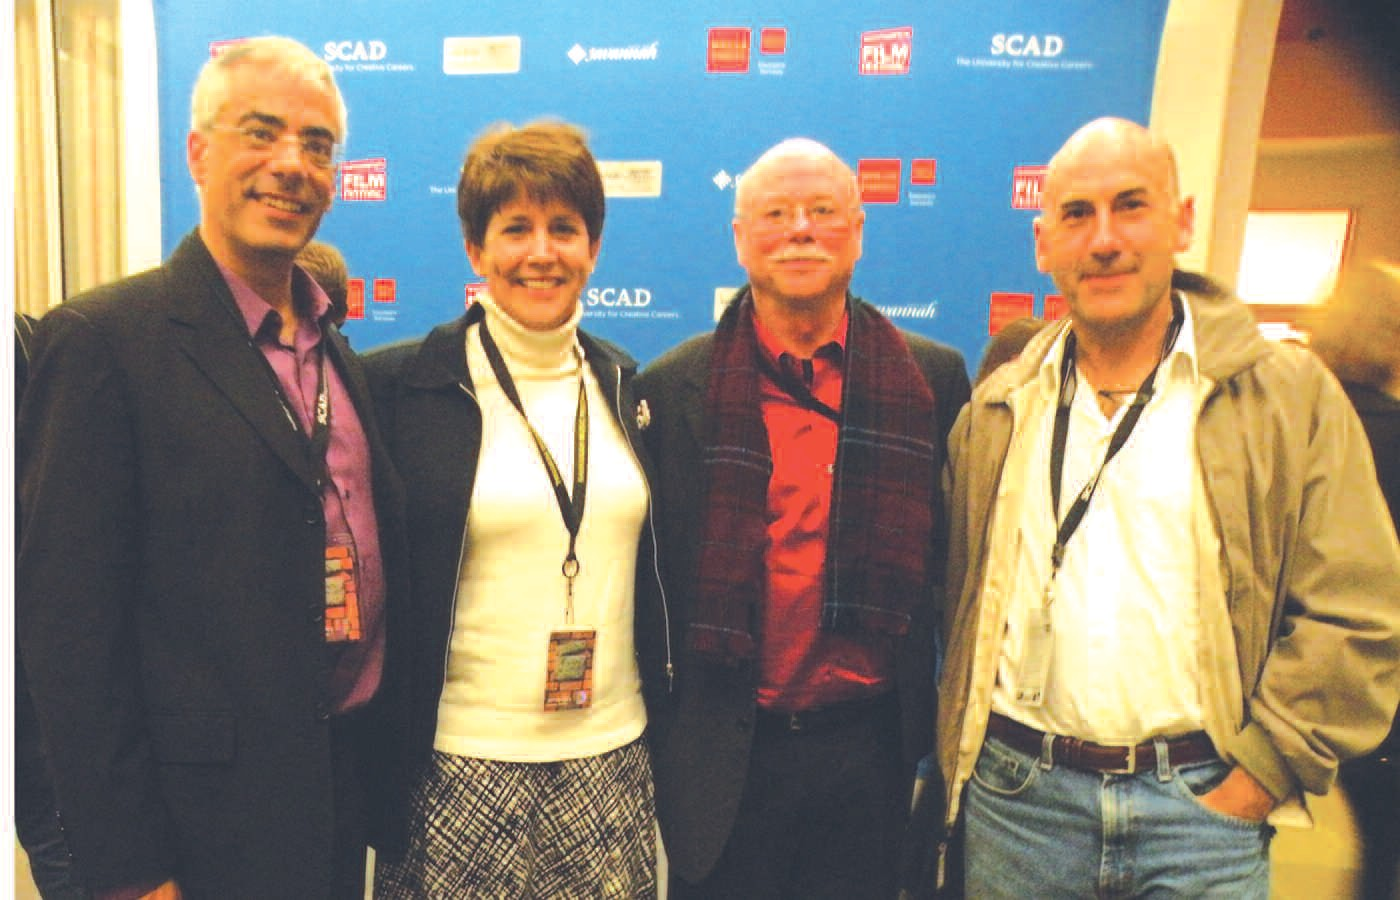 Left to right: Dean Peter Weishar, SCAD Film and Television; Marian Hofstein, film Producer and Stunt Performer; Michael Hofstein, Professor (SCAD) and multi talented, Director and Director of Photography; and James Eckhouse, Actor and Director.